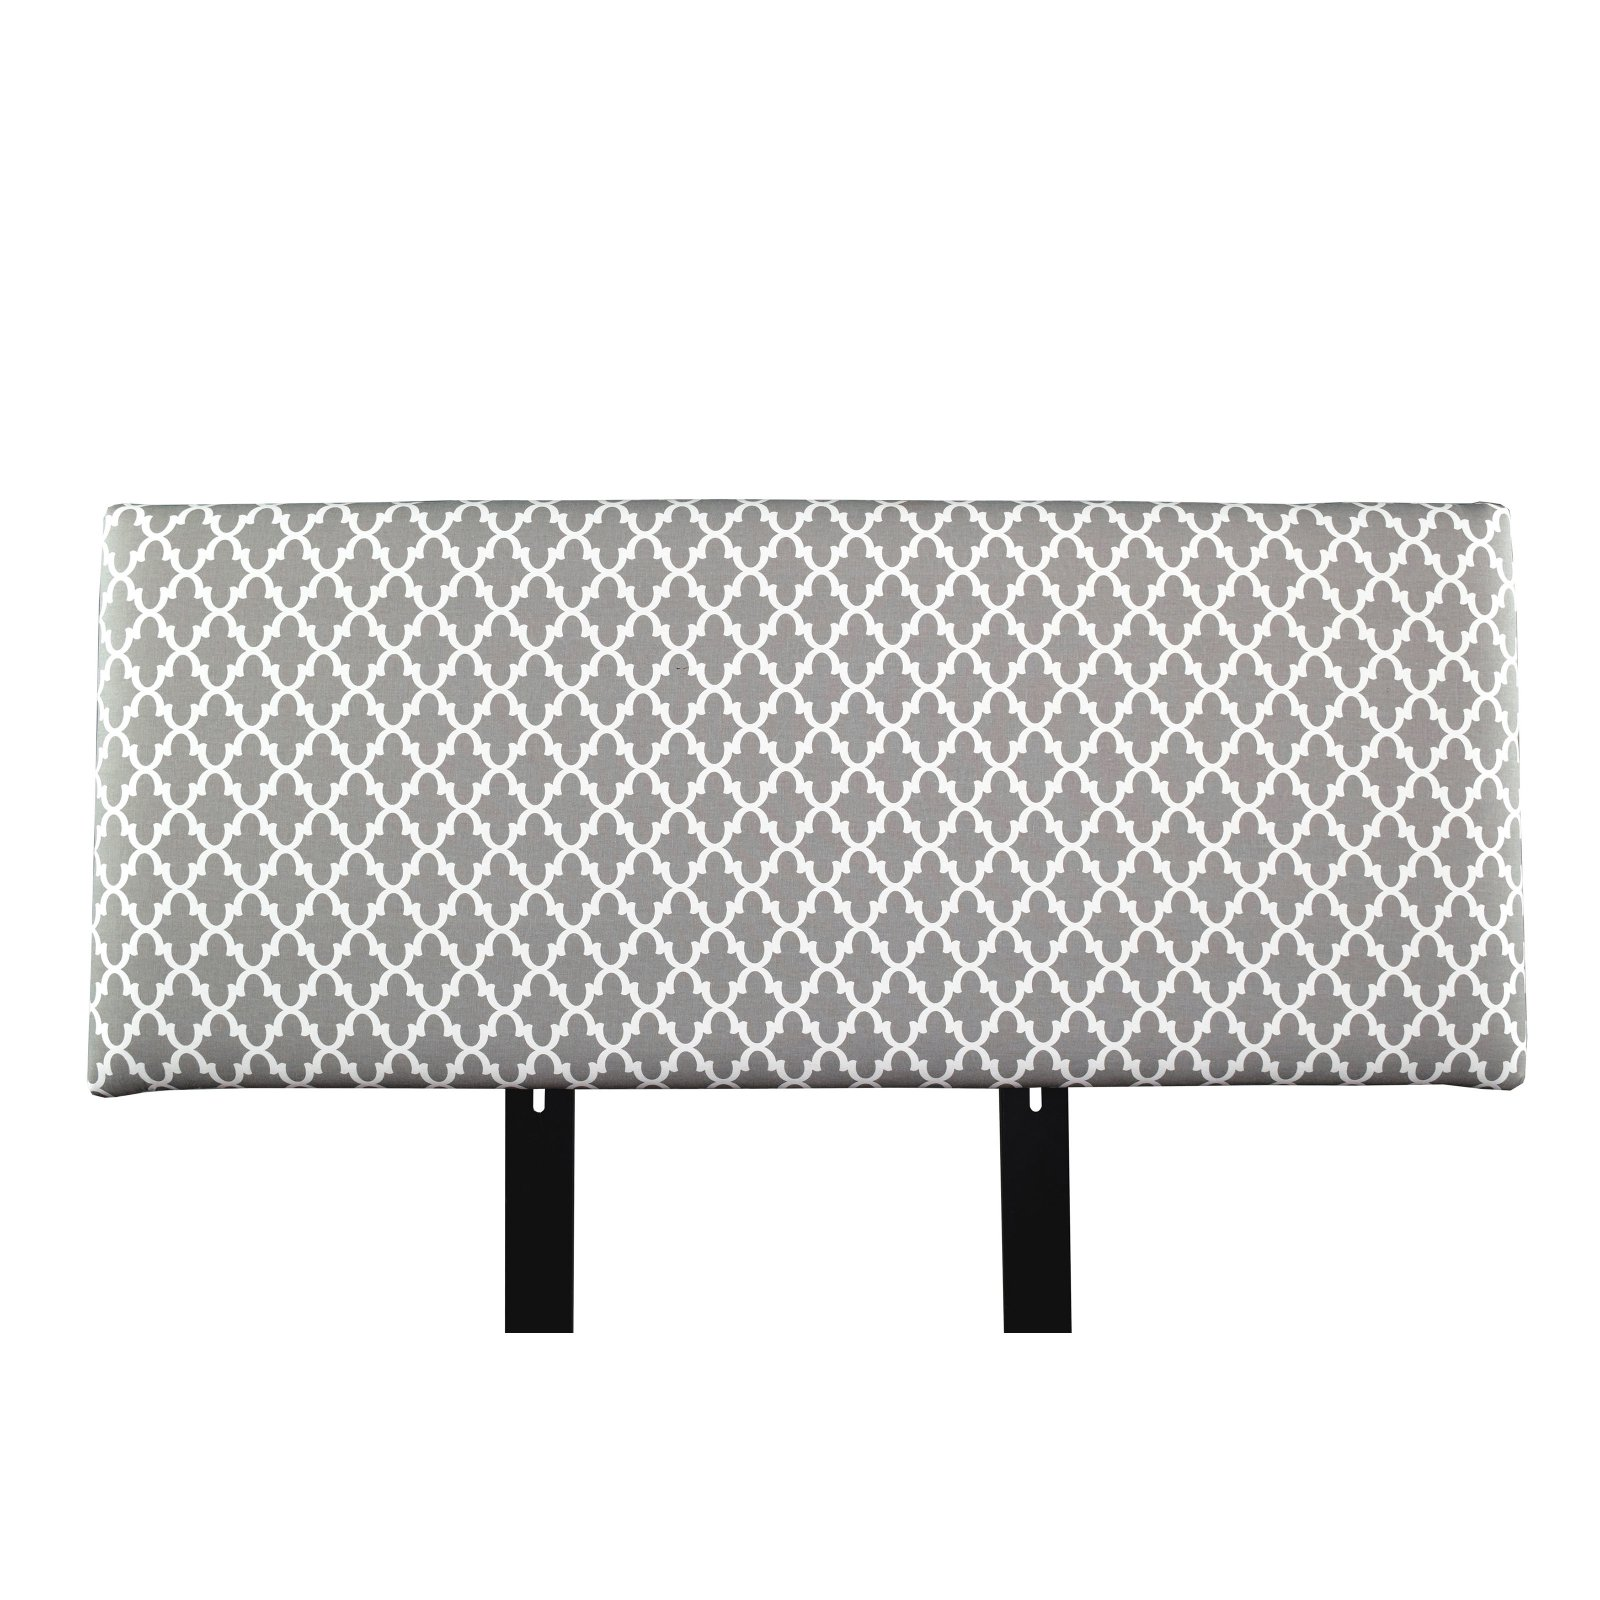 MJL Designs Fulton Upholstered Headboard